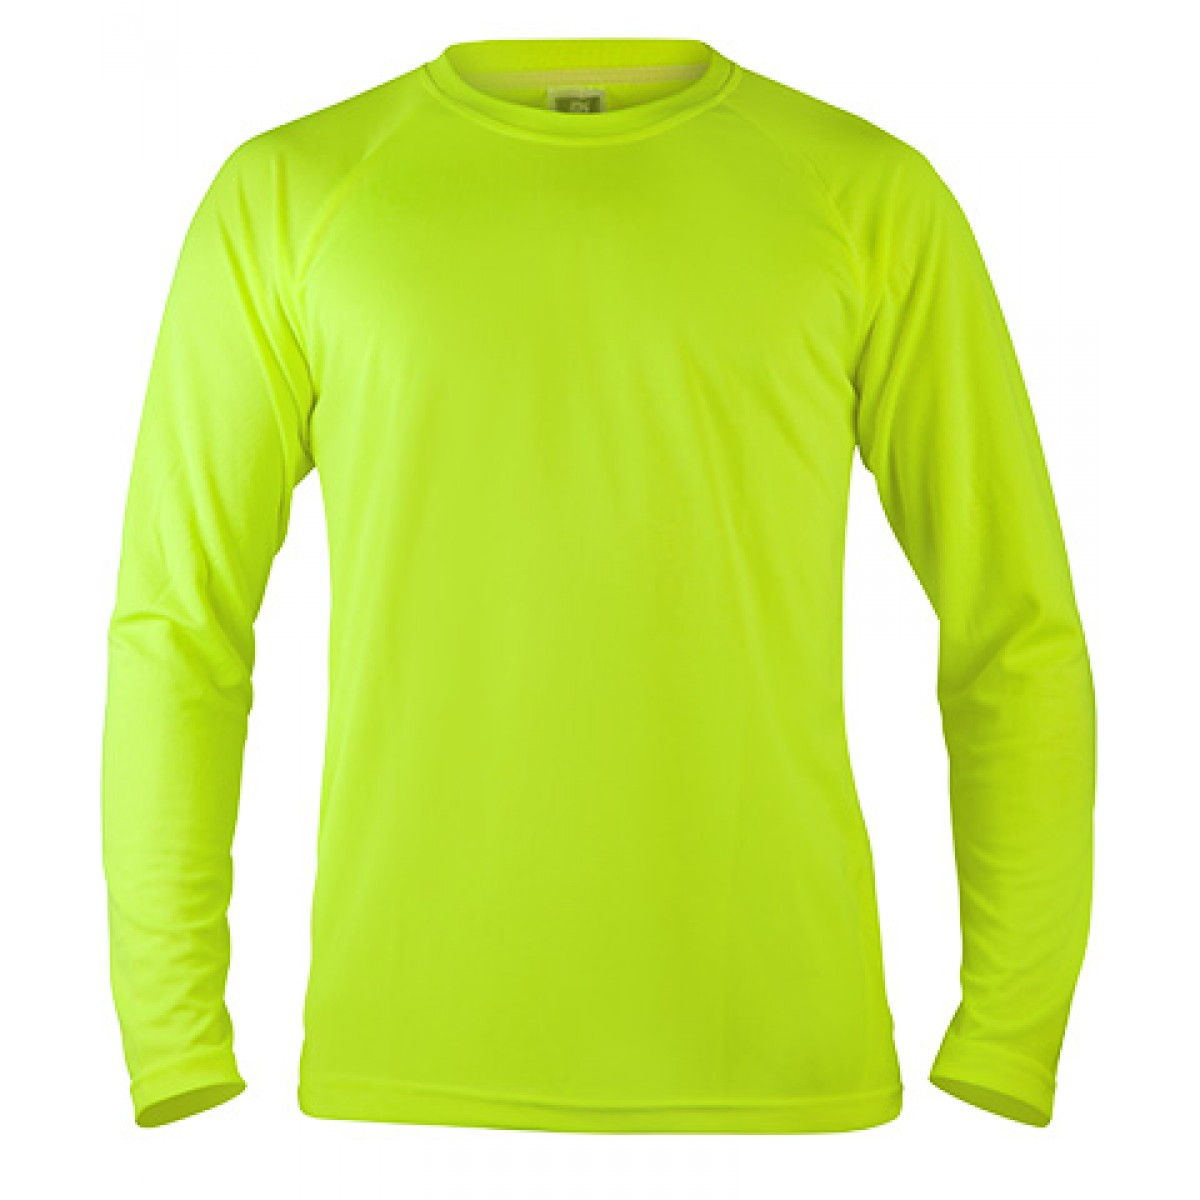 Long Sleeve Performance -Safety Green-M